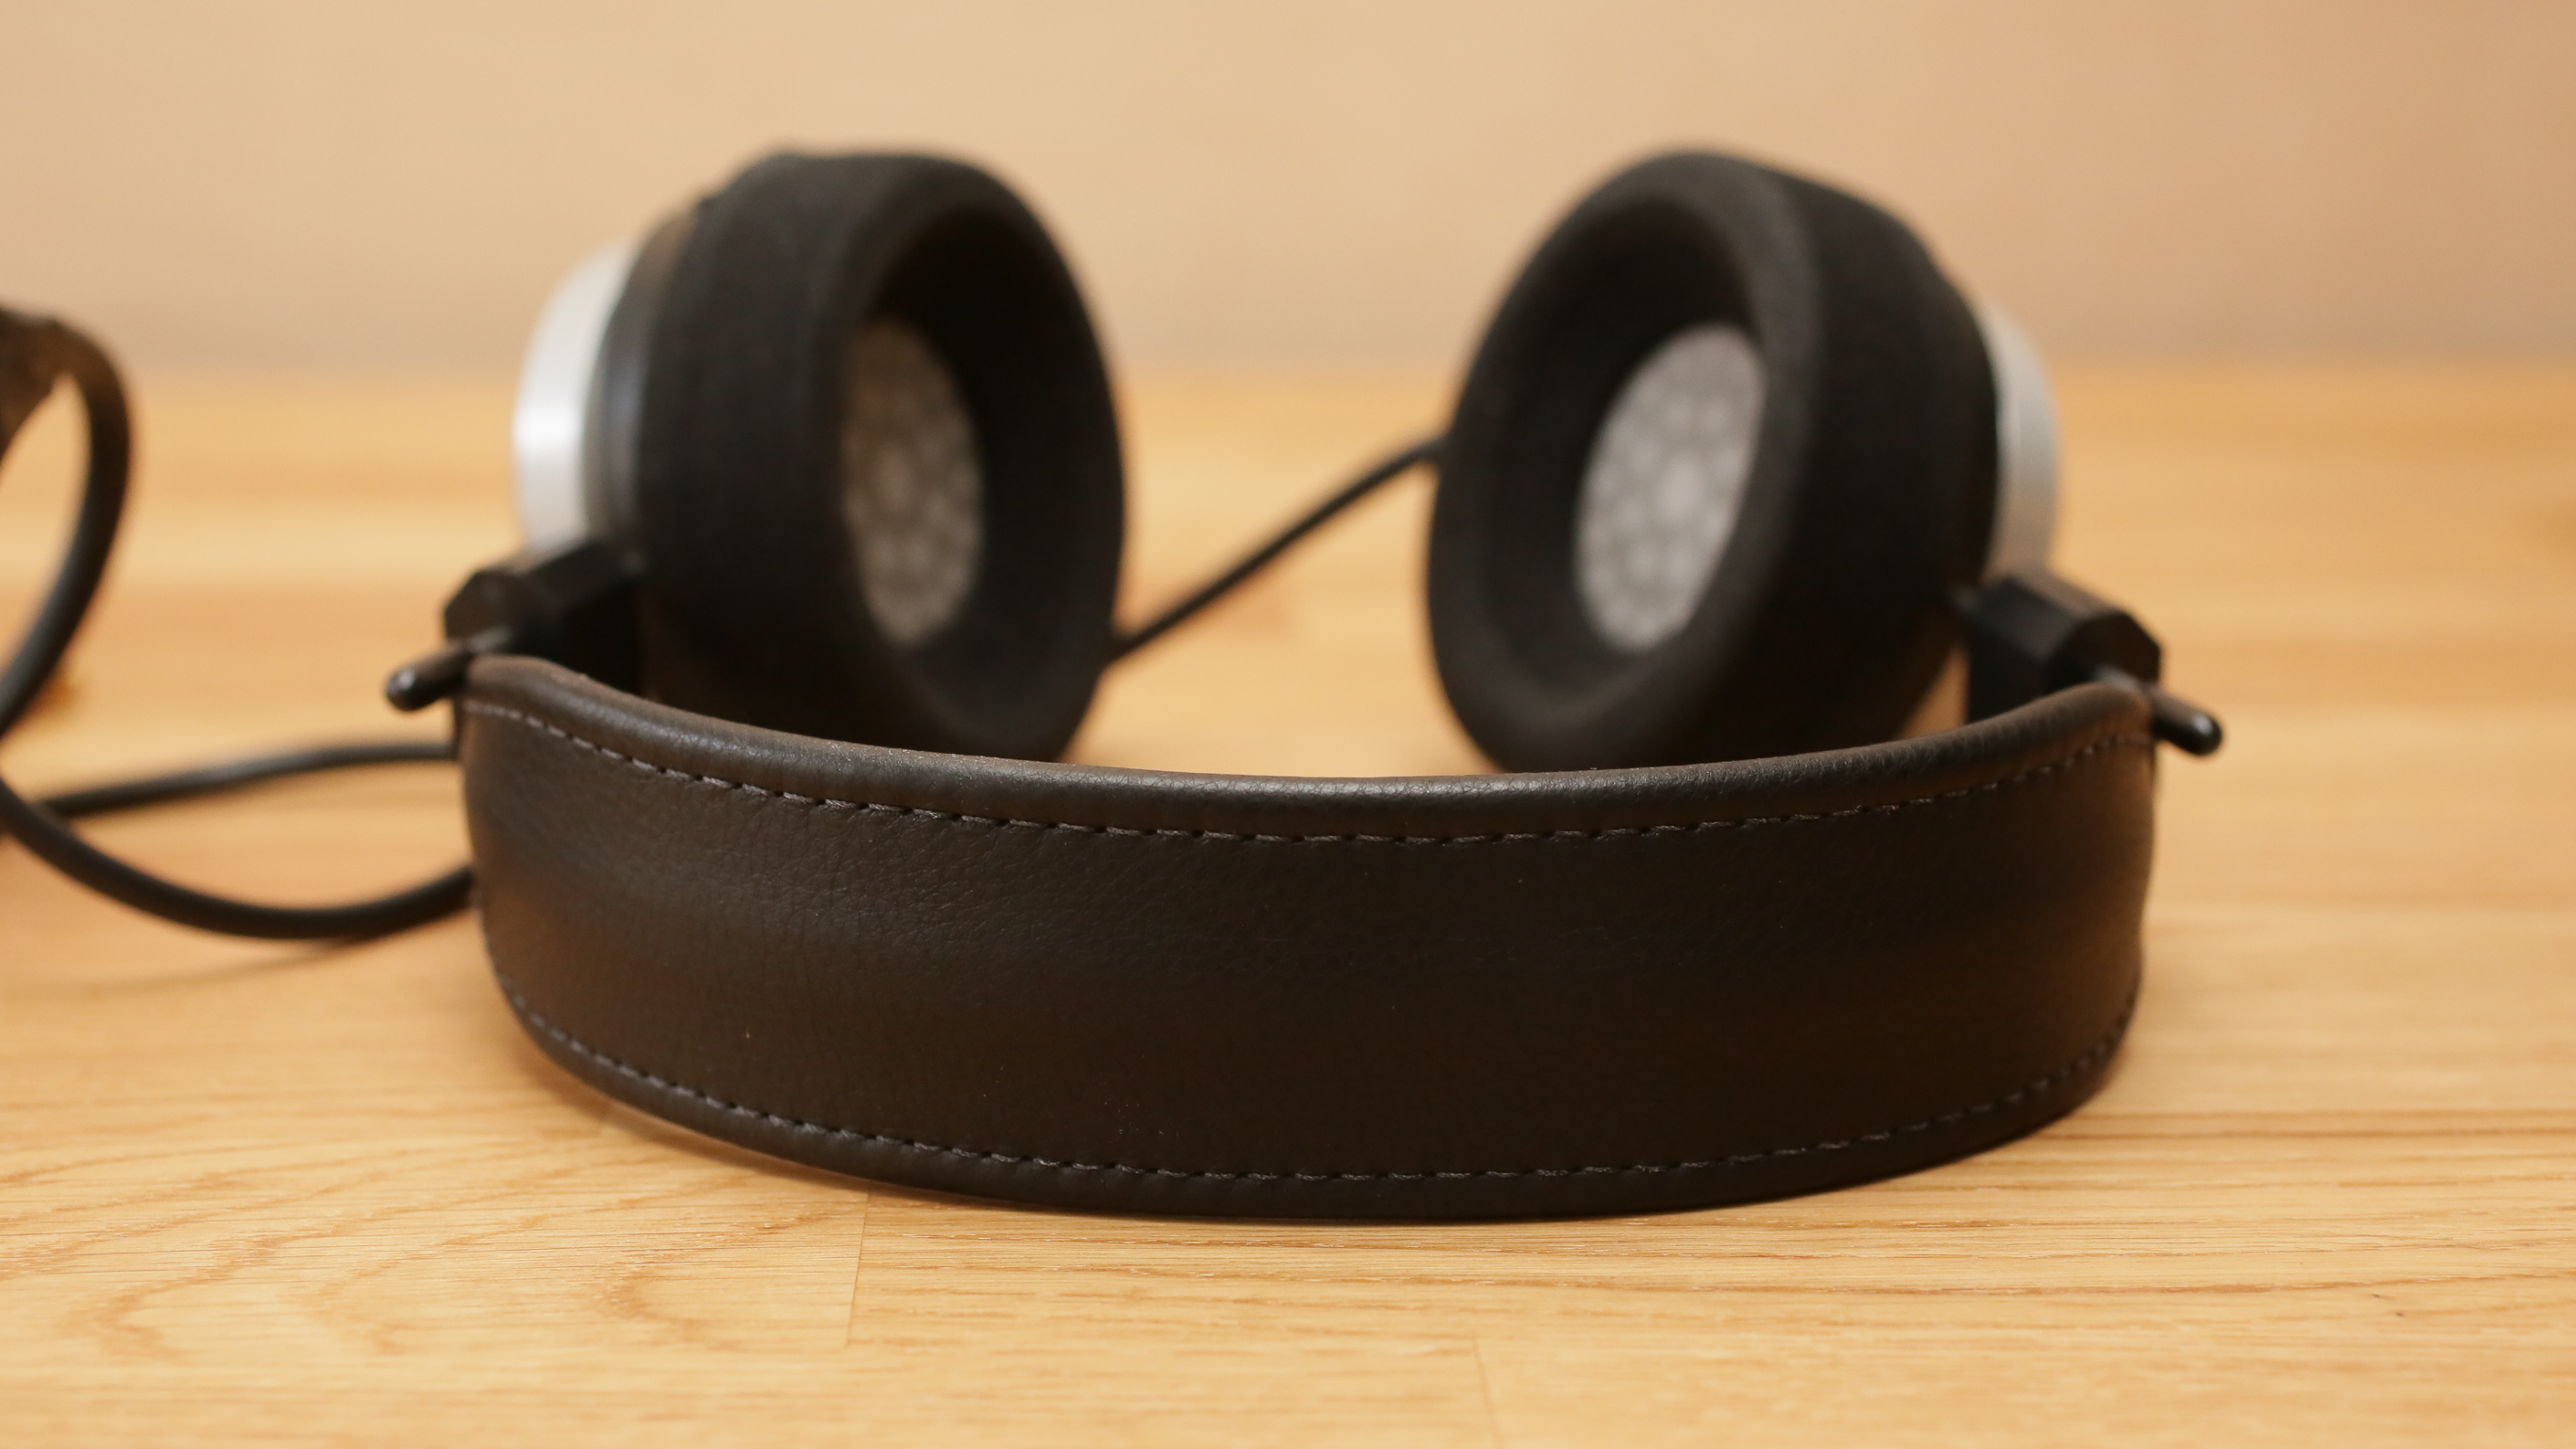 grado-sr-325e-headphones-product-photos01.jpg